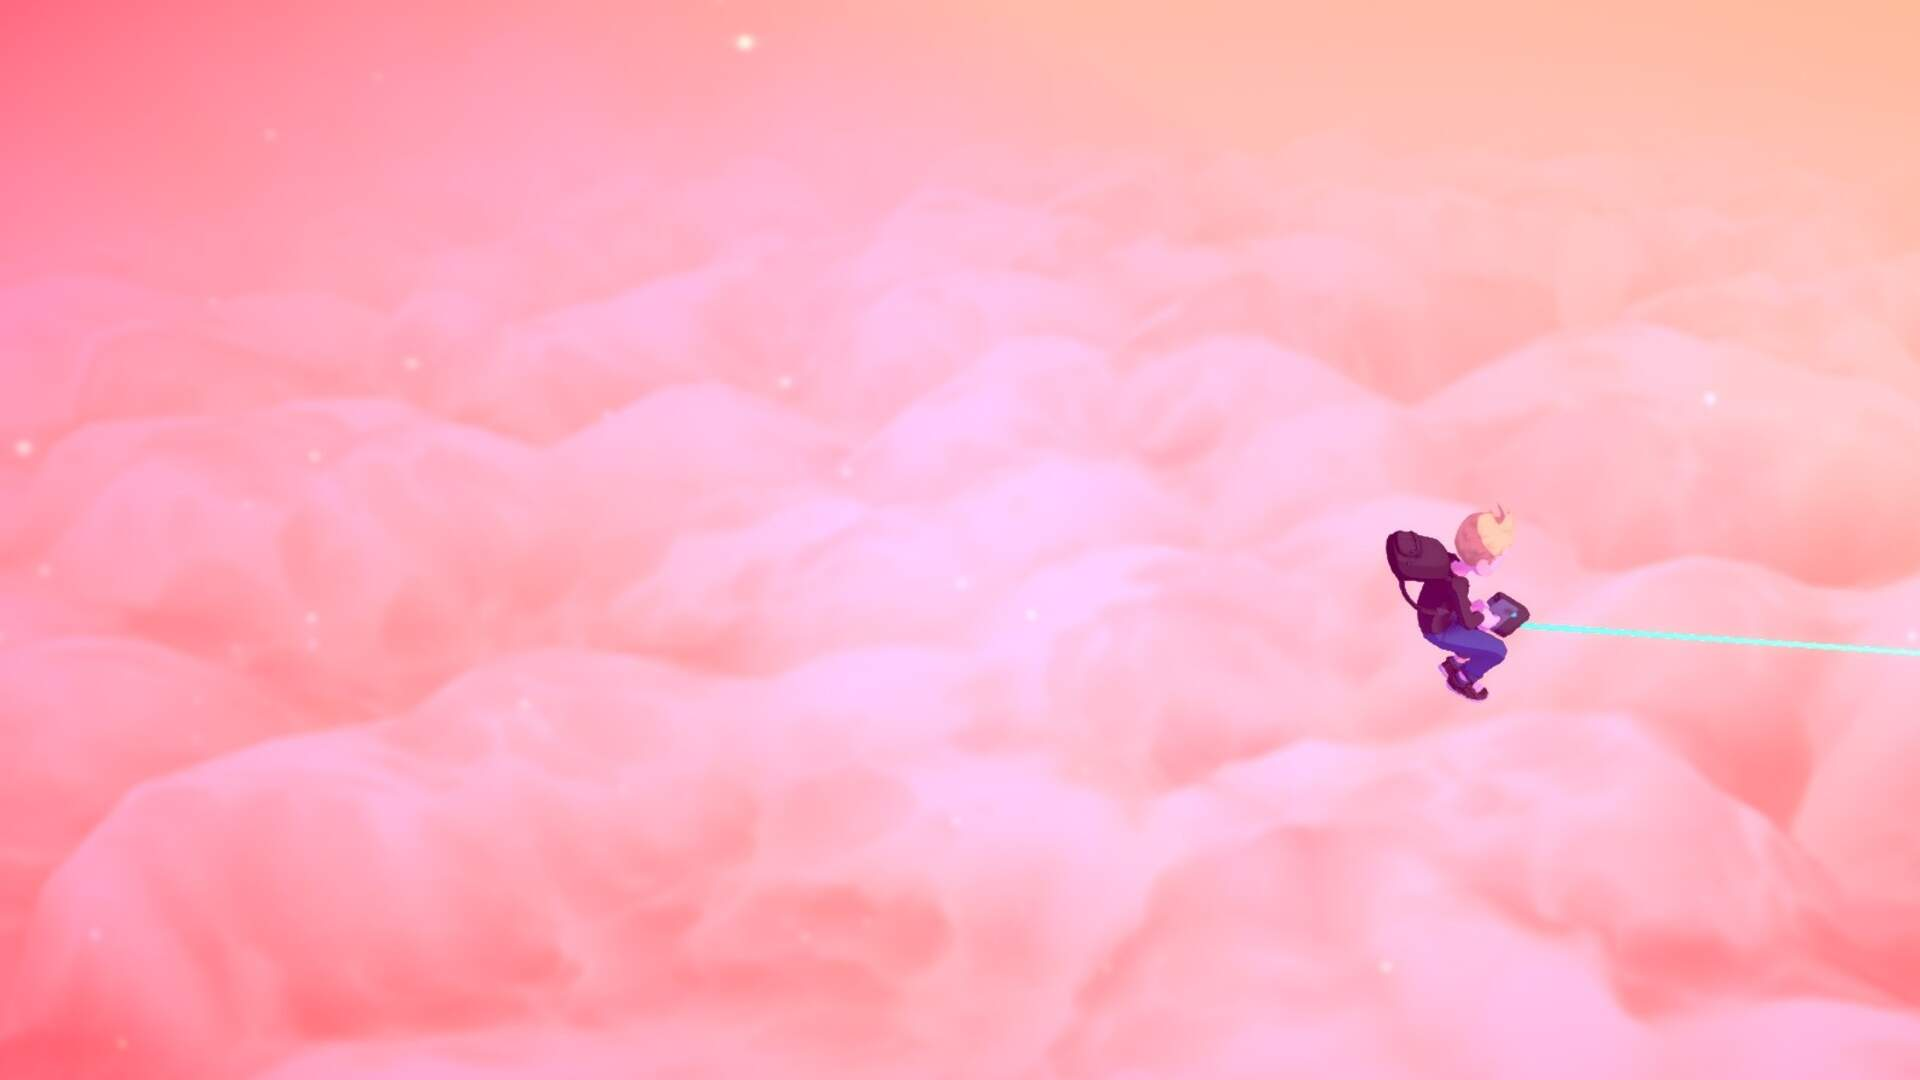 Temtem: How to Cross Gaps with the Rock-Hopping Hook and Get to Kisiwa